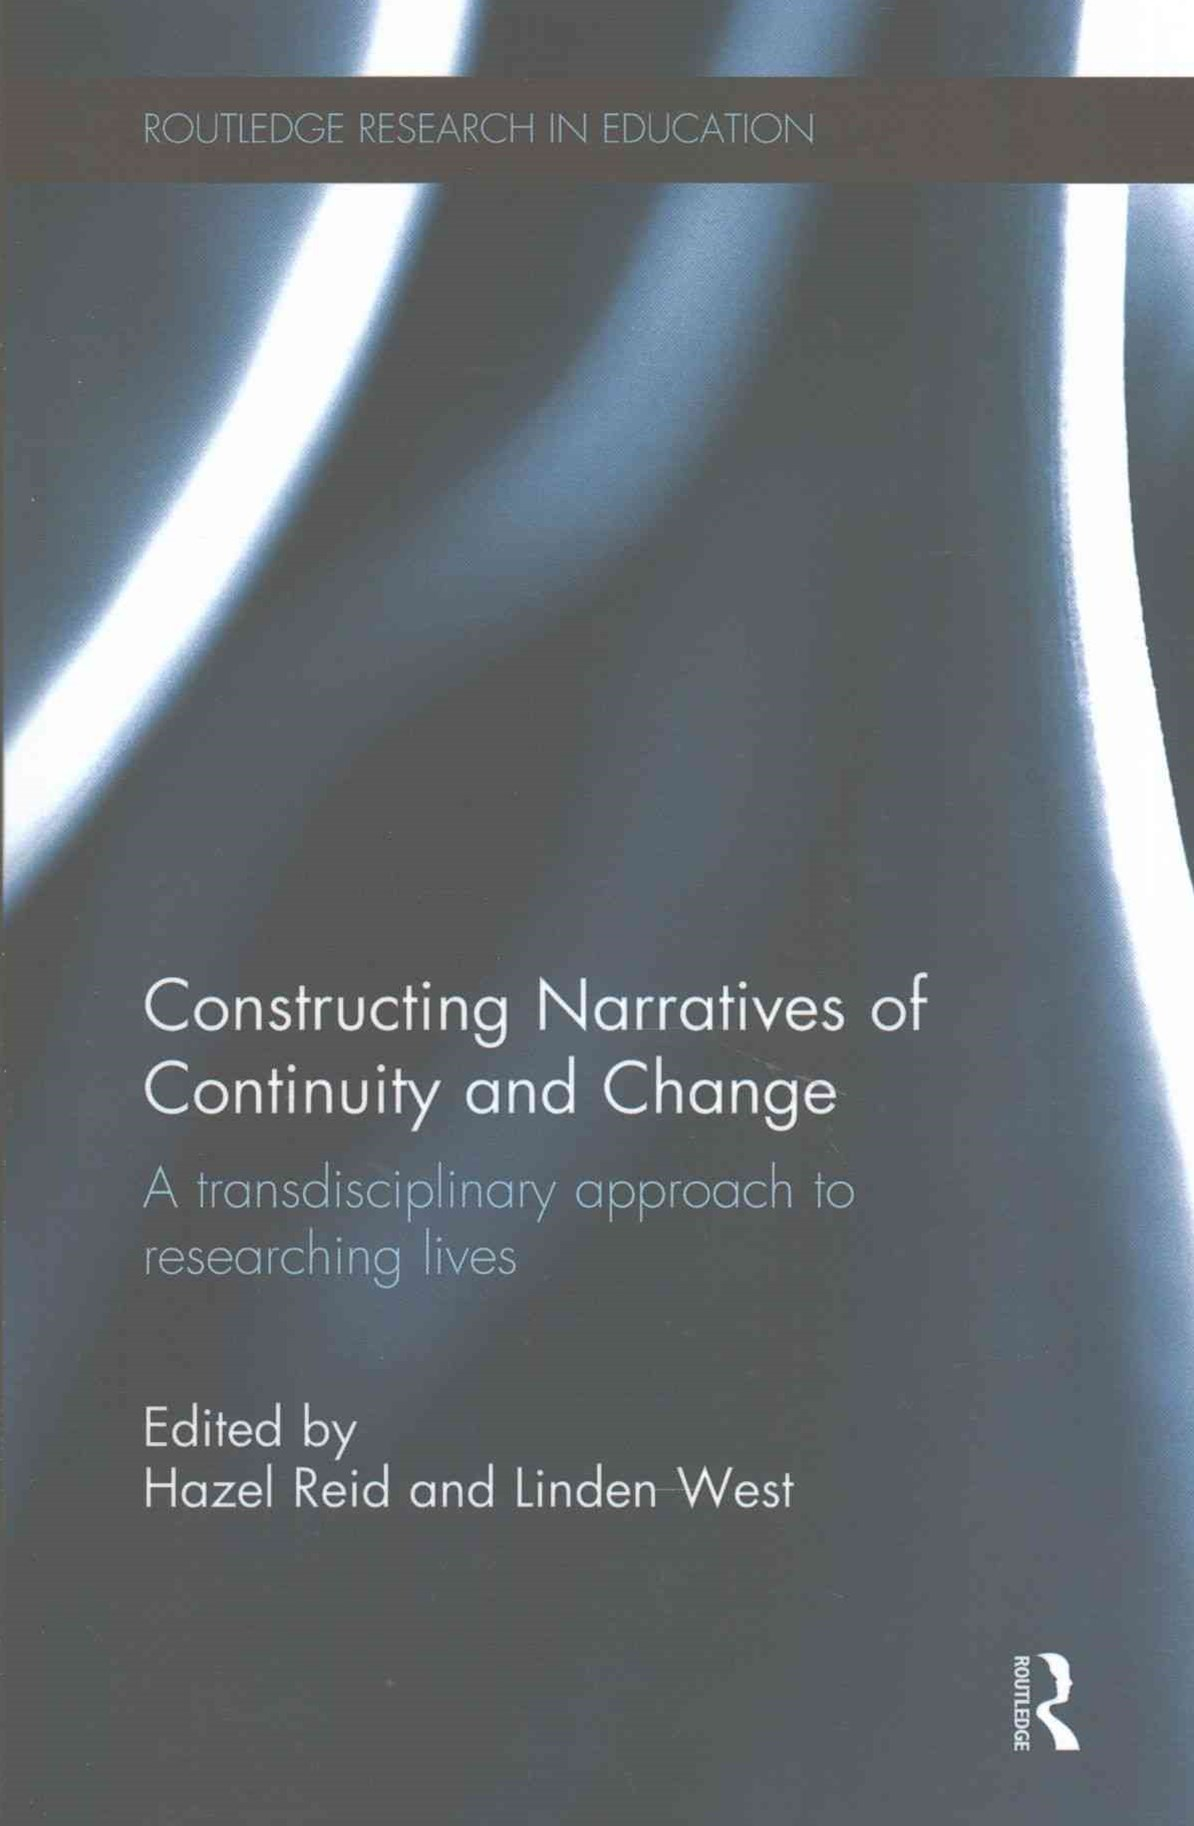 Constructing Narratives of Continuity and Change